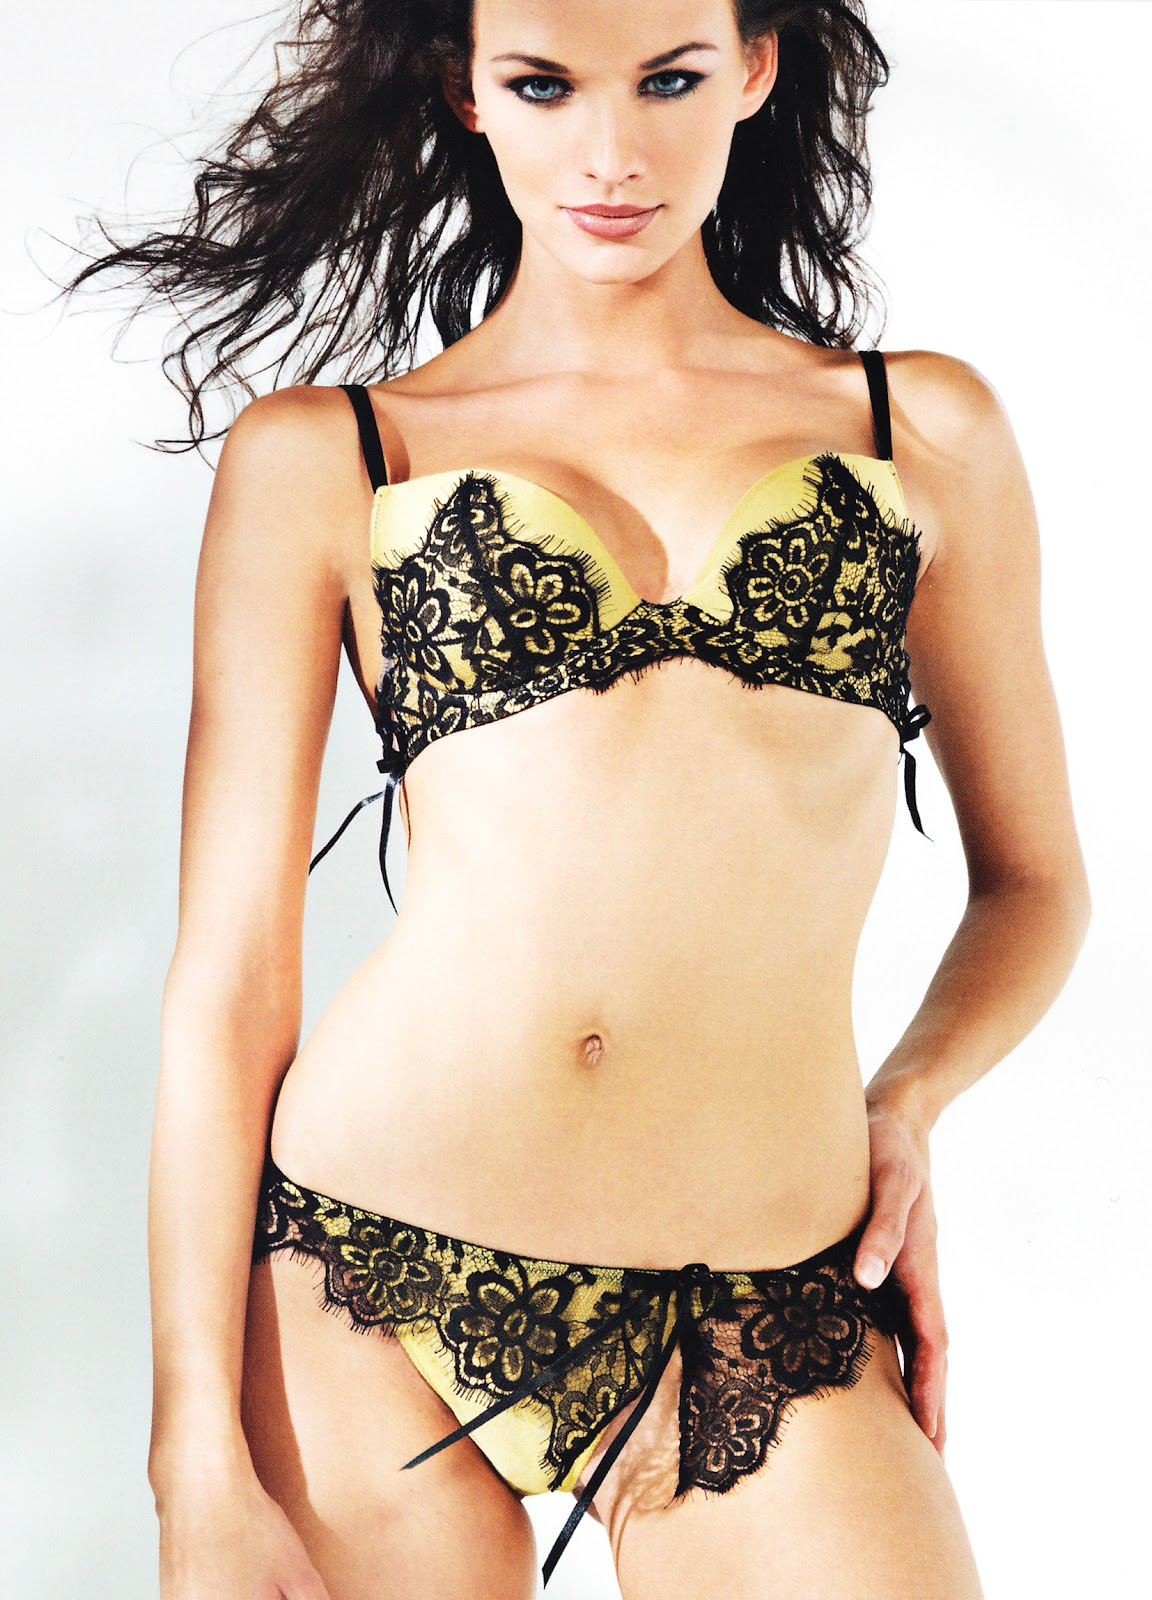 What is The most desirable aspect of lingerie?: Gallary